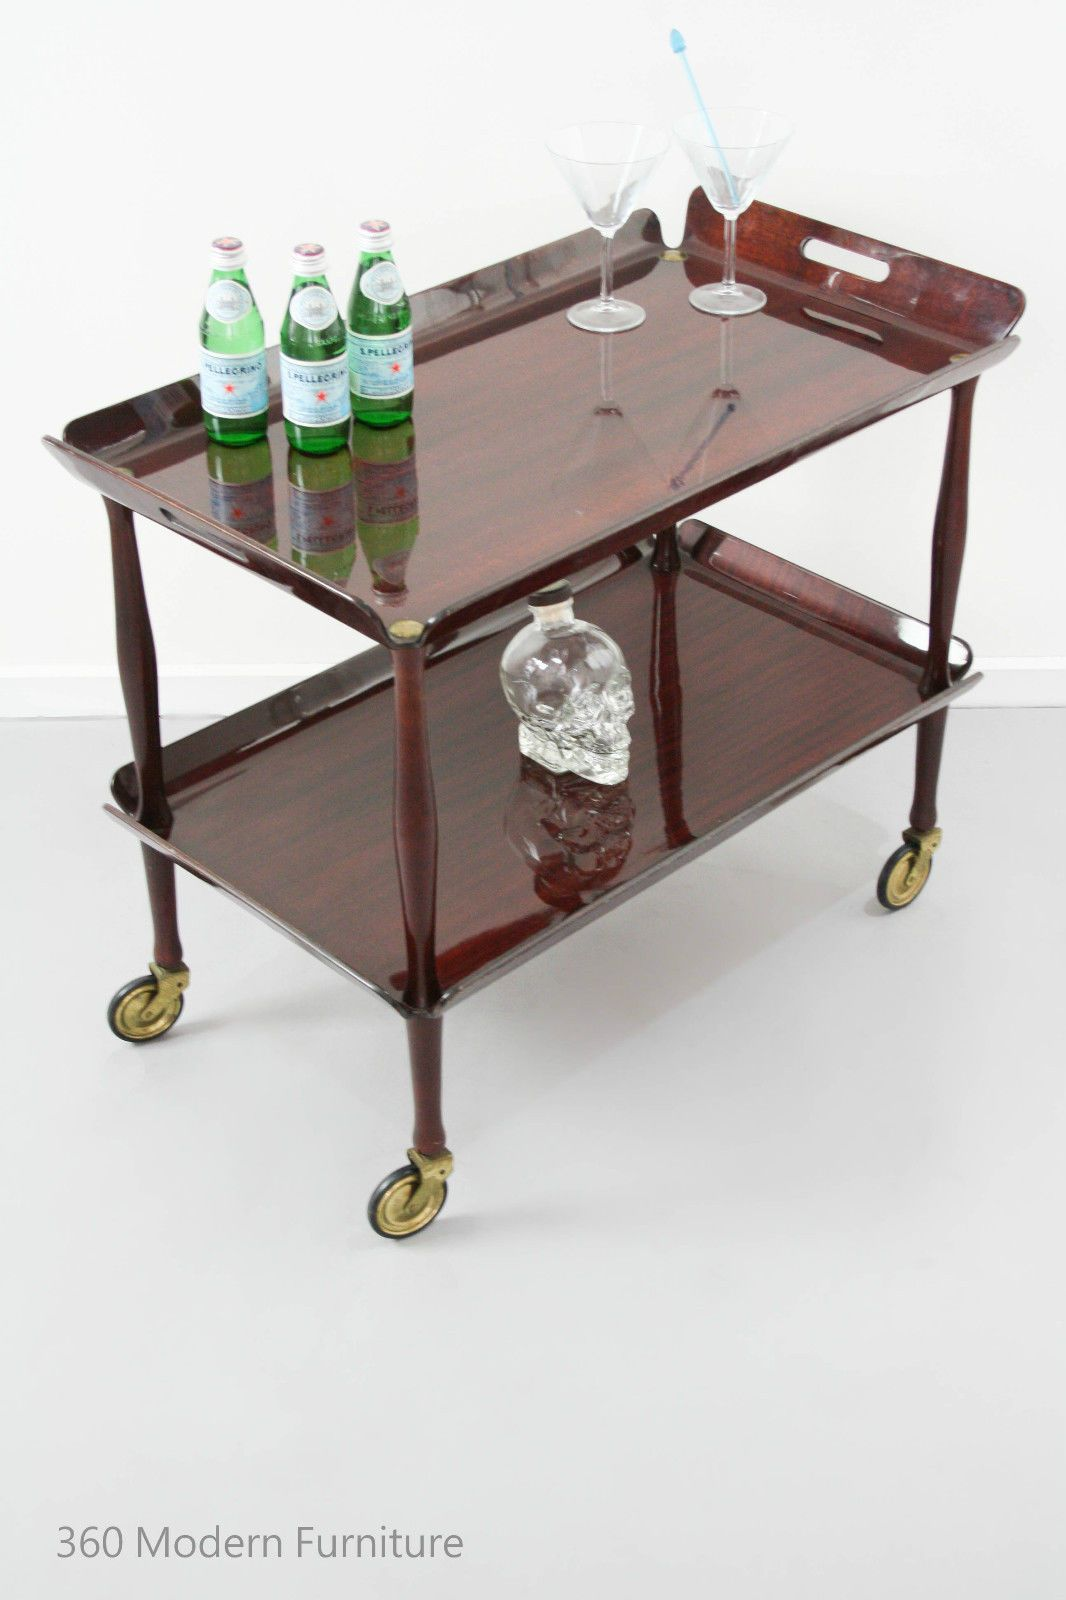 Art deco german tea auto trolley table bar cart sideboard retro art deco german tea auto trolley table bar cart sideboard retro vintage drgm stunning geotapseo Choice Image